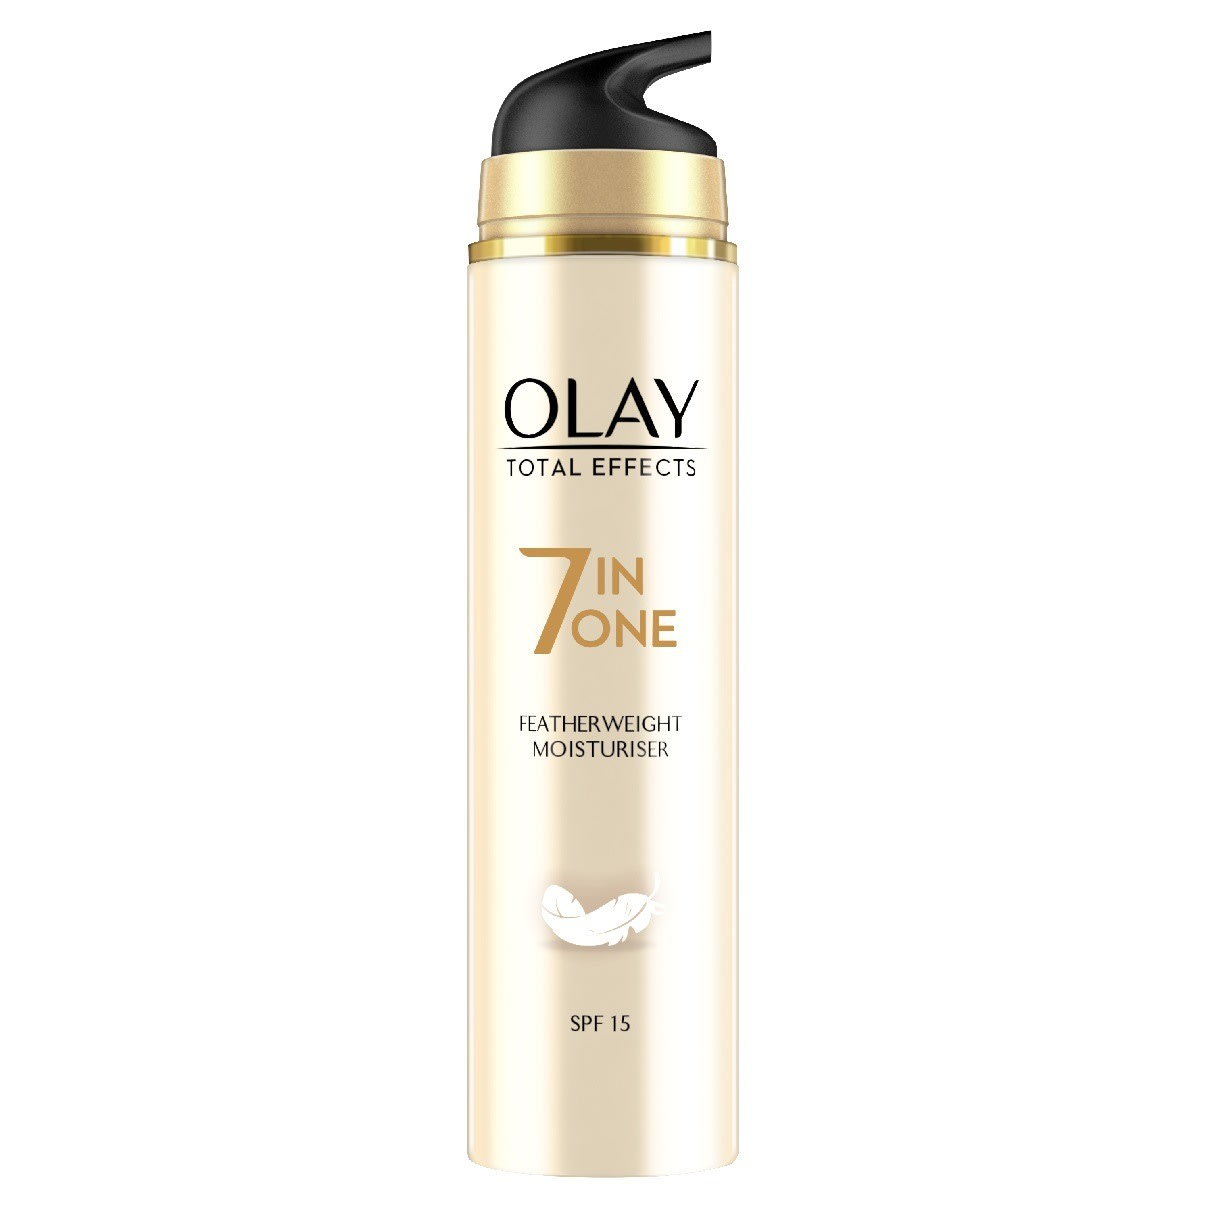 Olay Total Effects 7in1 Anti-Ageing Featherweight Moisturiser SPF15